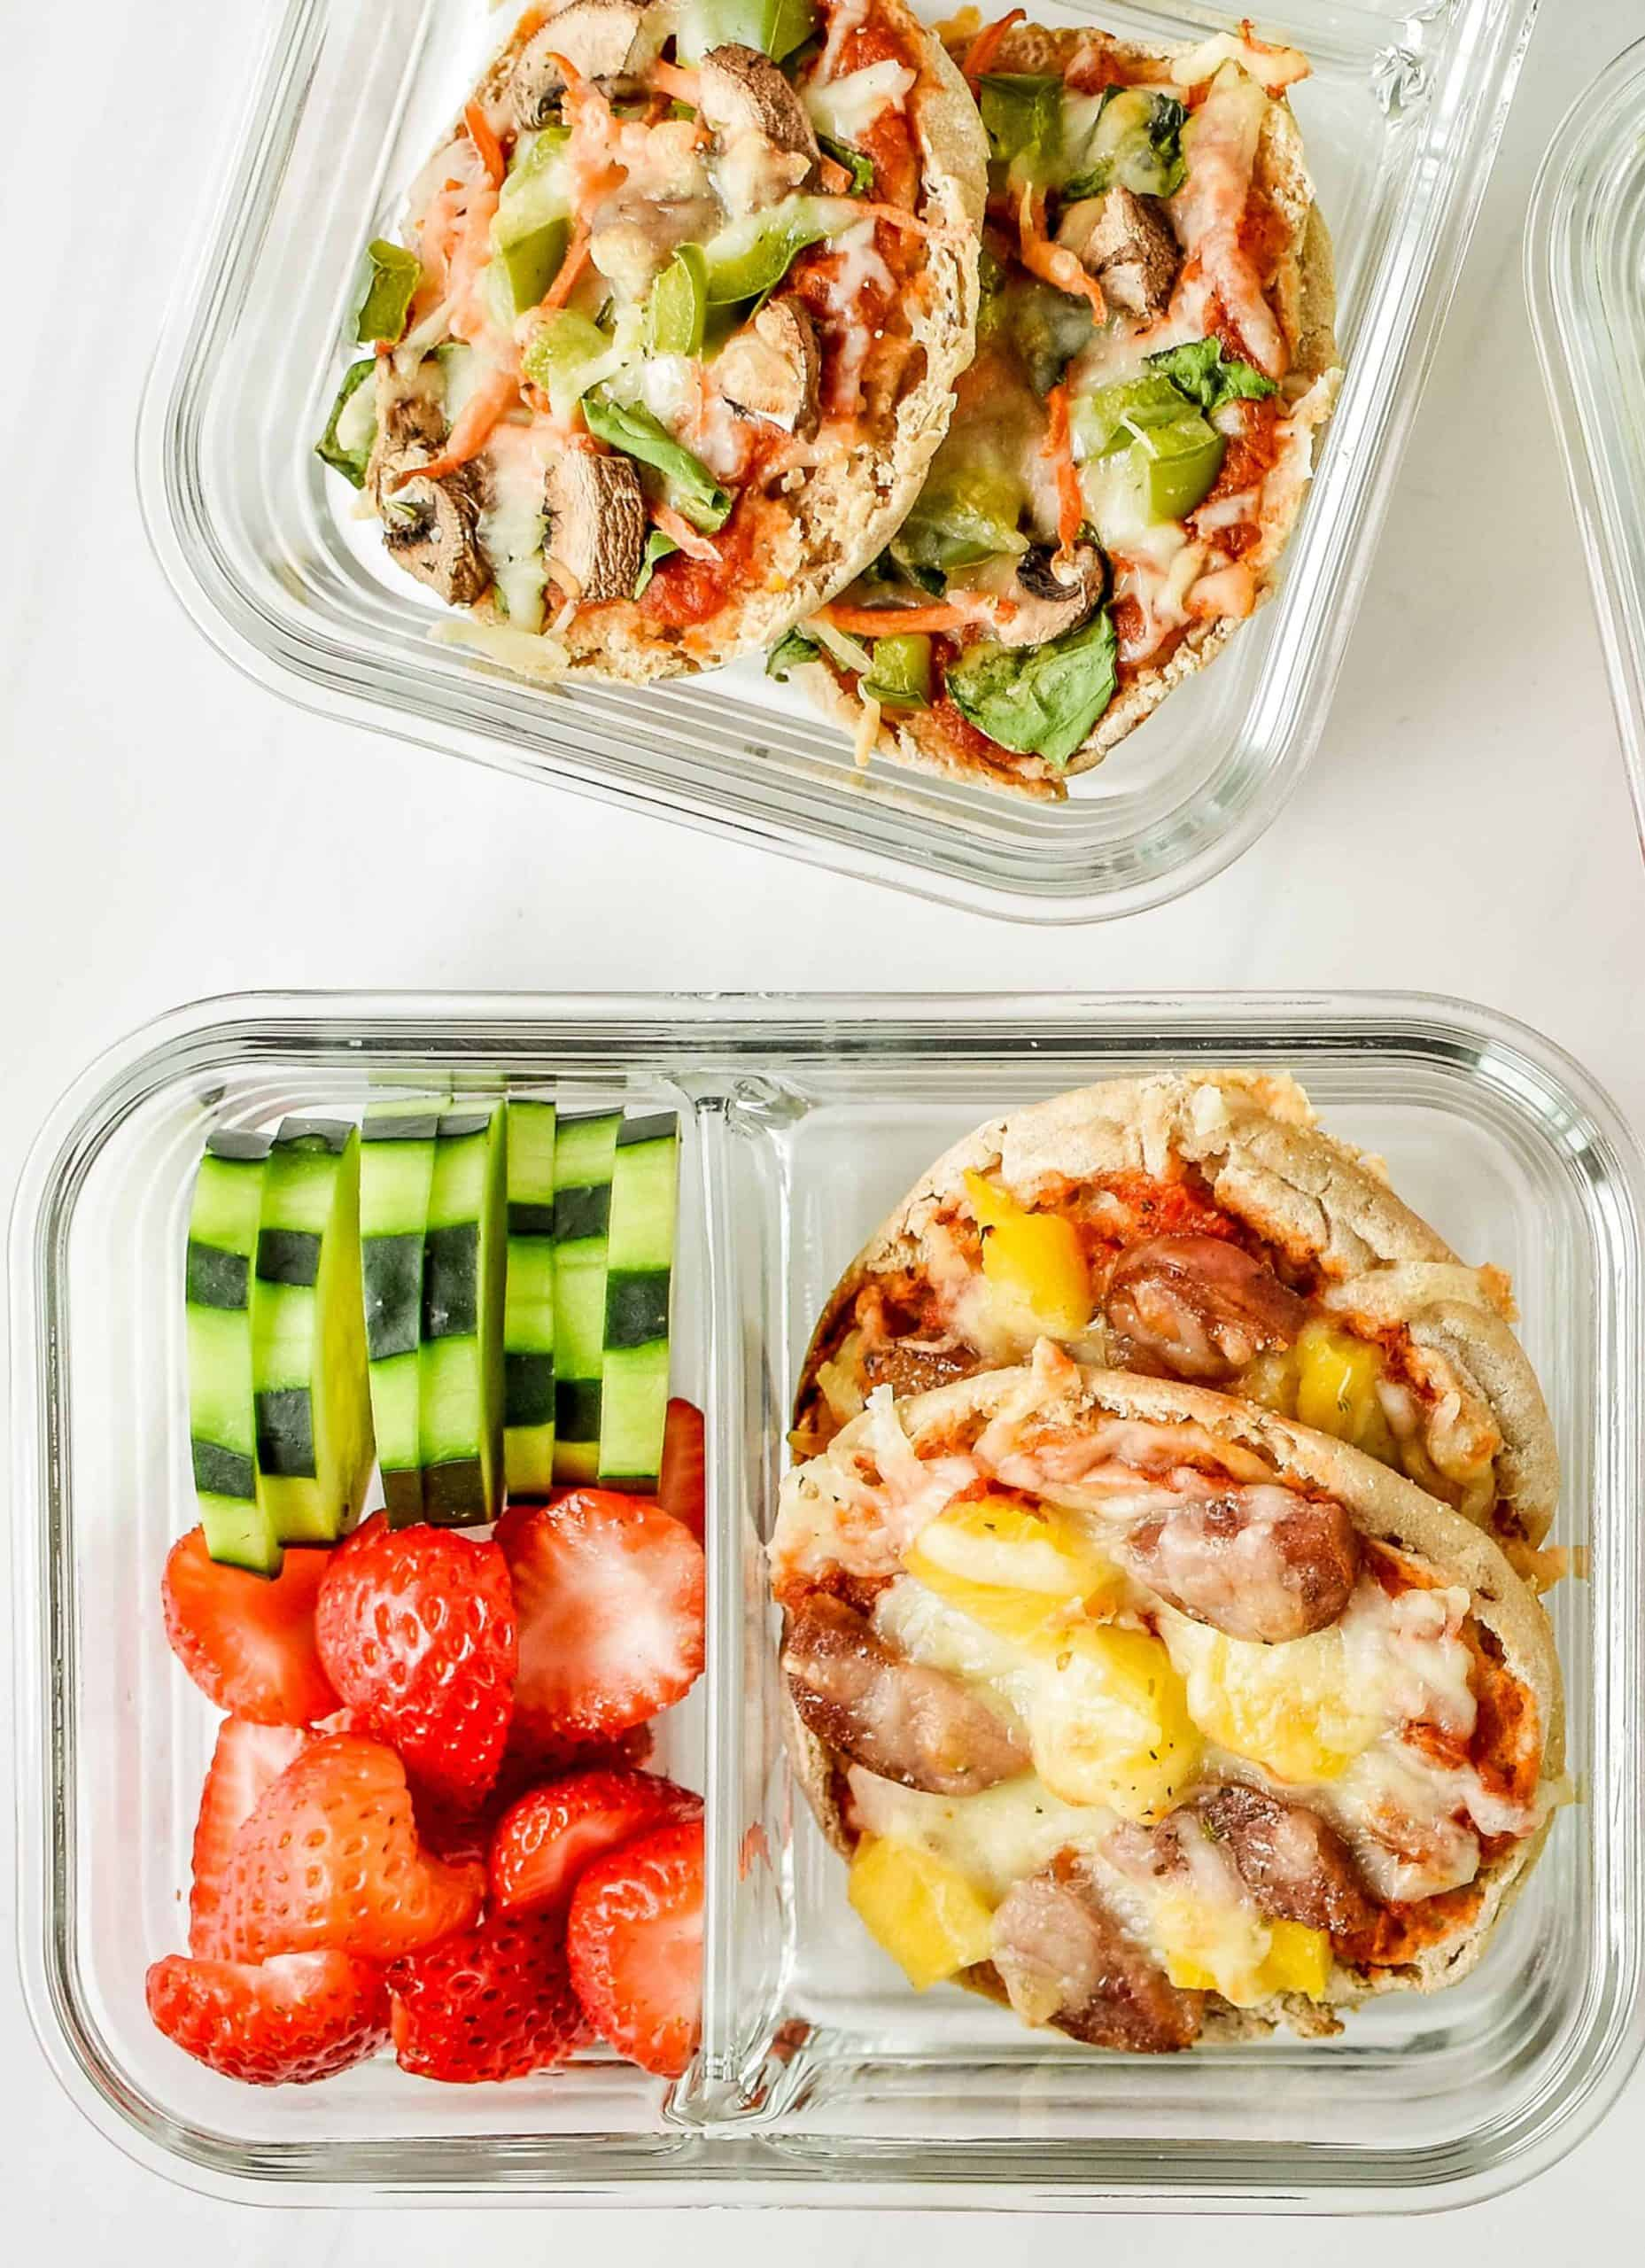 Muffins pizza in a meal prep container with slices of cucumber and strawberries - Project meal plan.